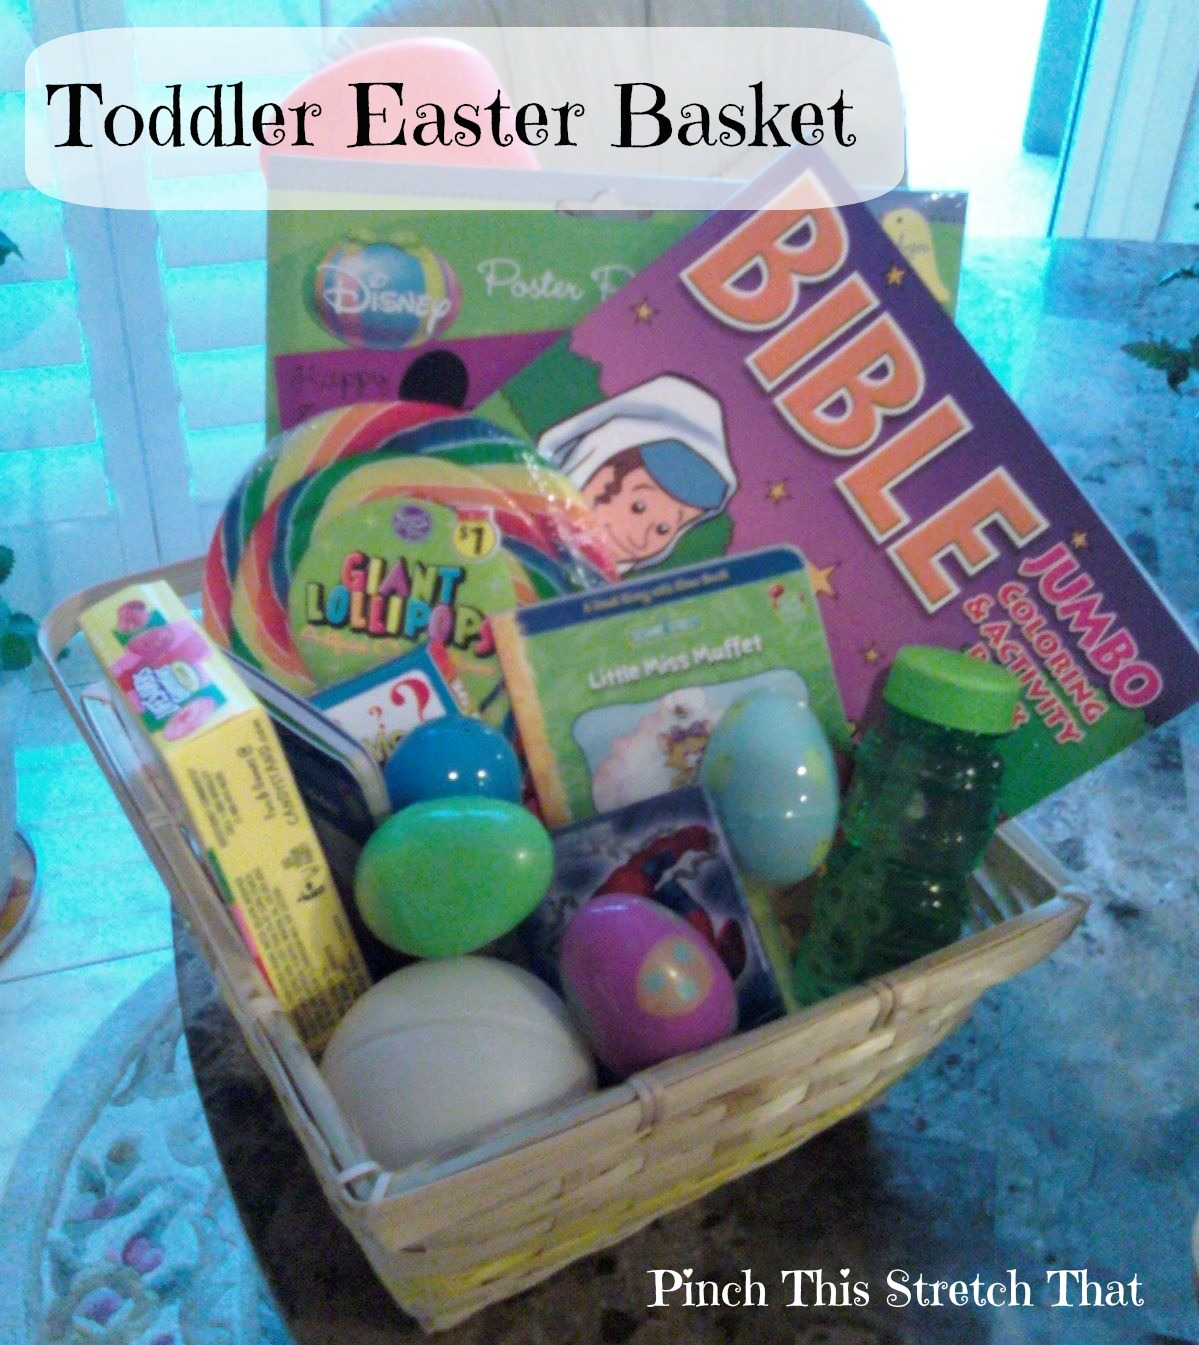 Homemade easter basket ideas under 10 homemade easter basket ideas from momslifeboat ginahorne easter negle Gallery